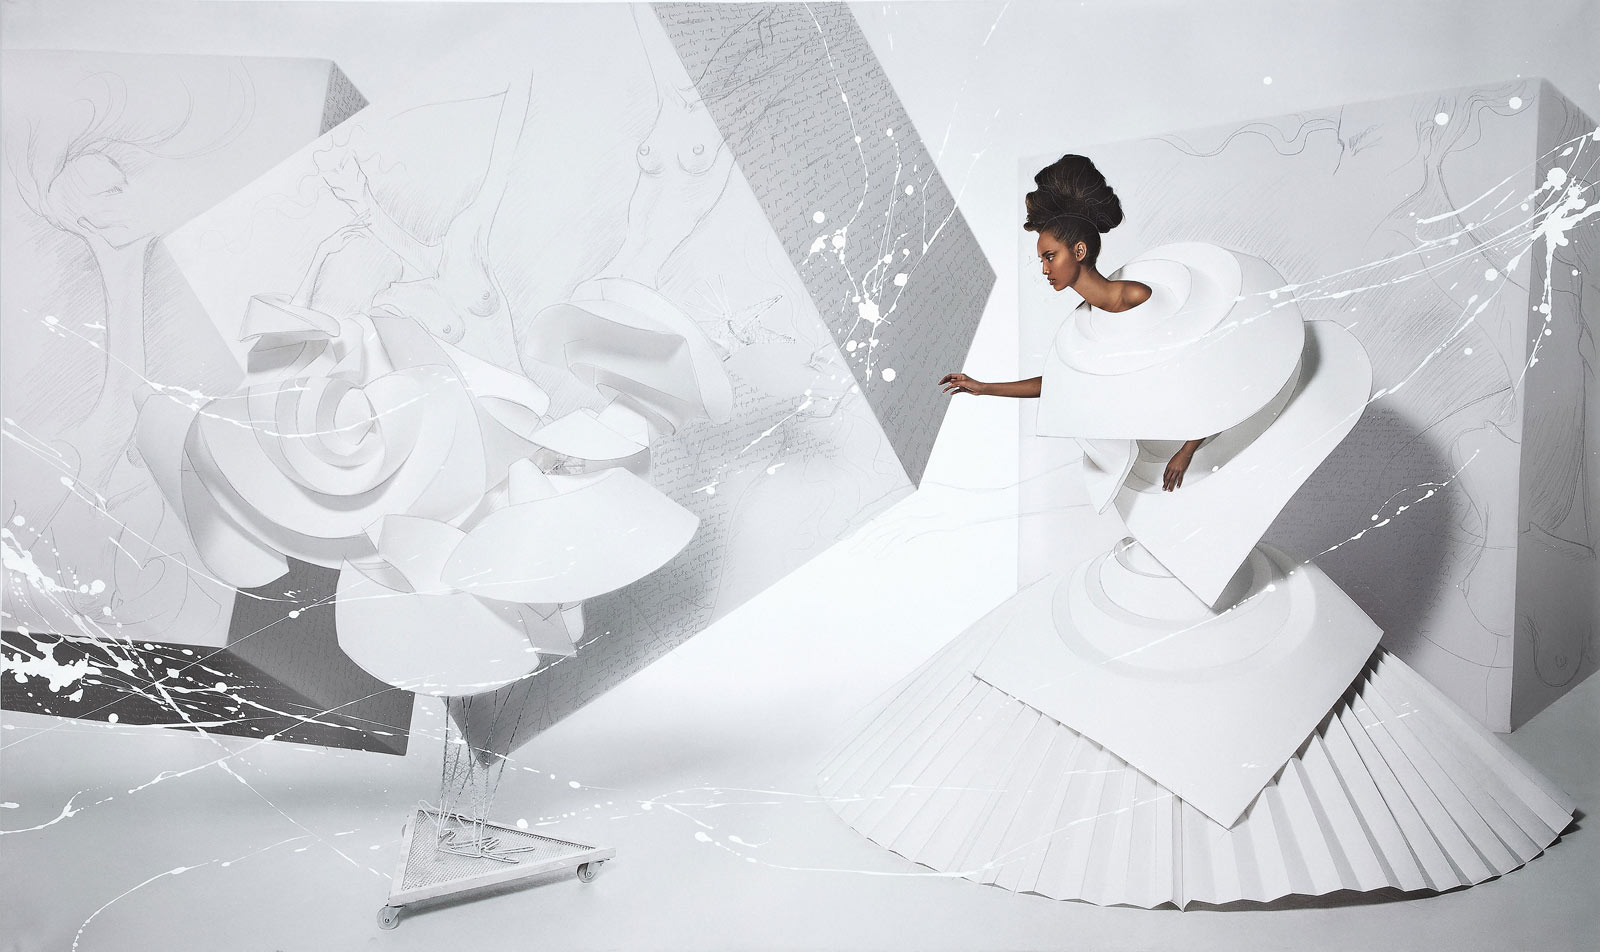 Black Girl in Origami dress with rooster